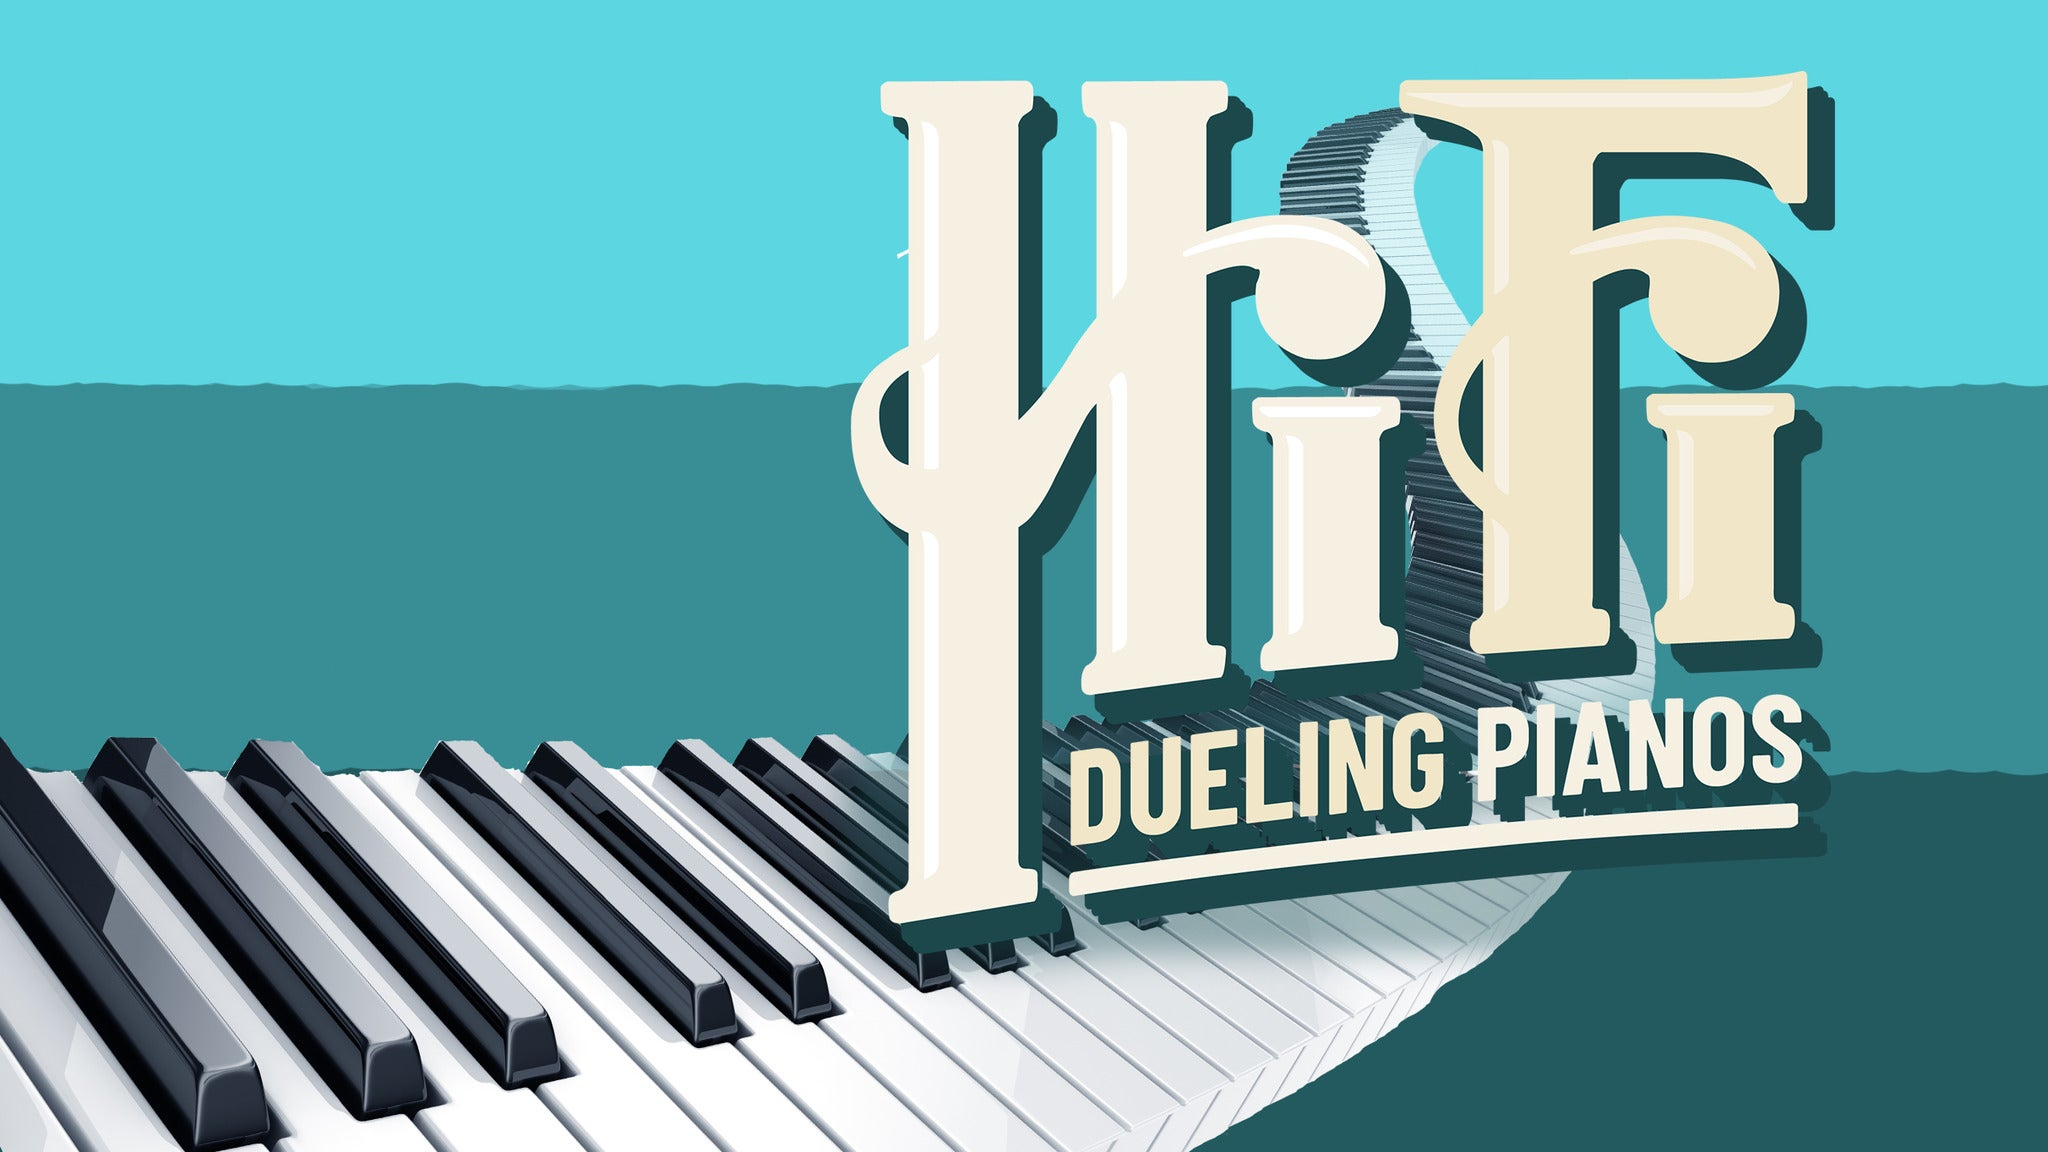 Dueling Pianos at United Wireless Arena